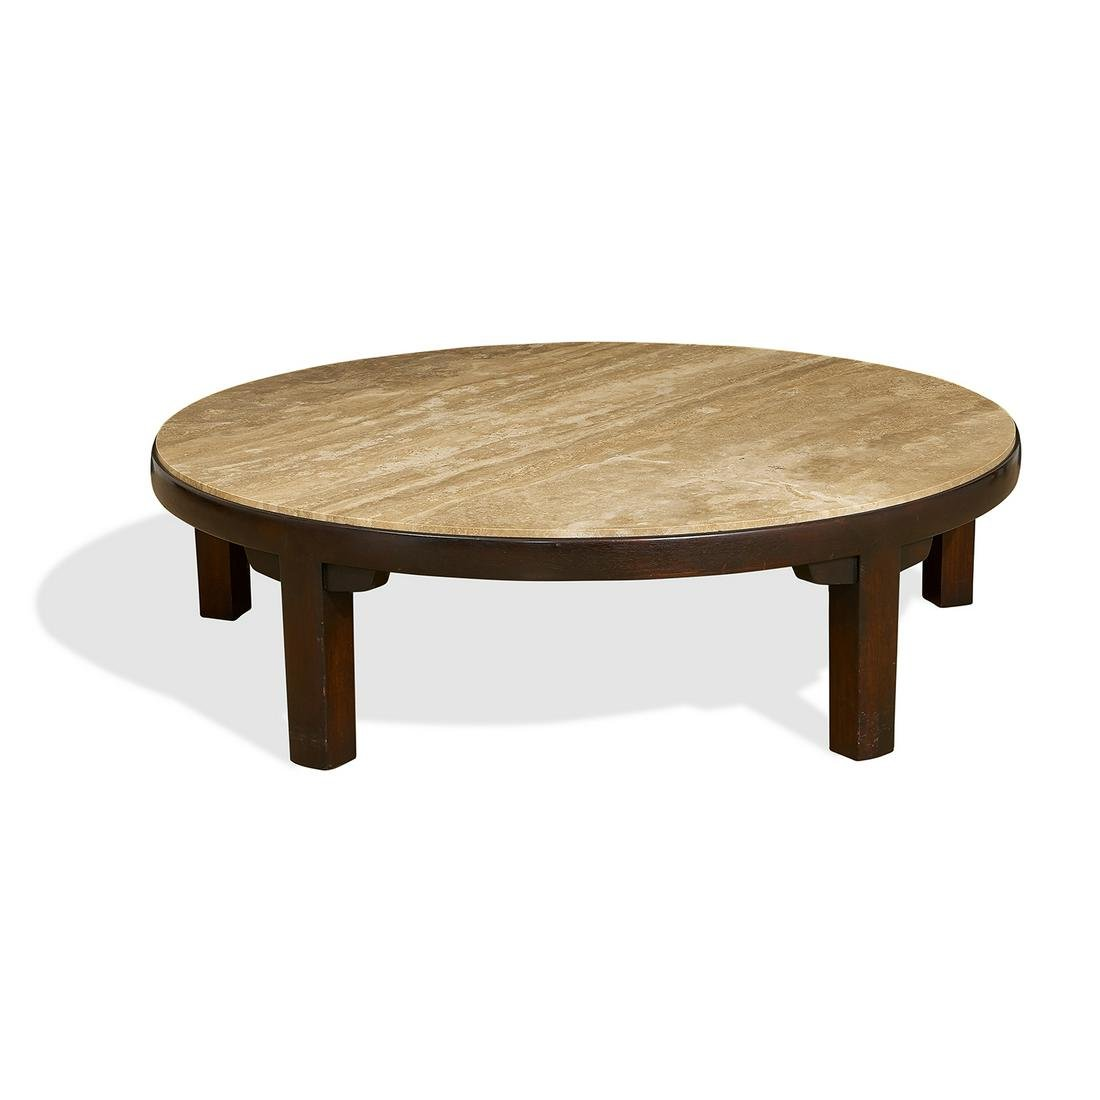 Edward Wormley for Dunbar coffee table, #5219